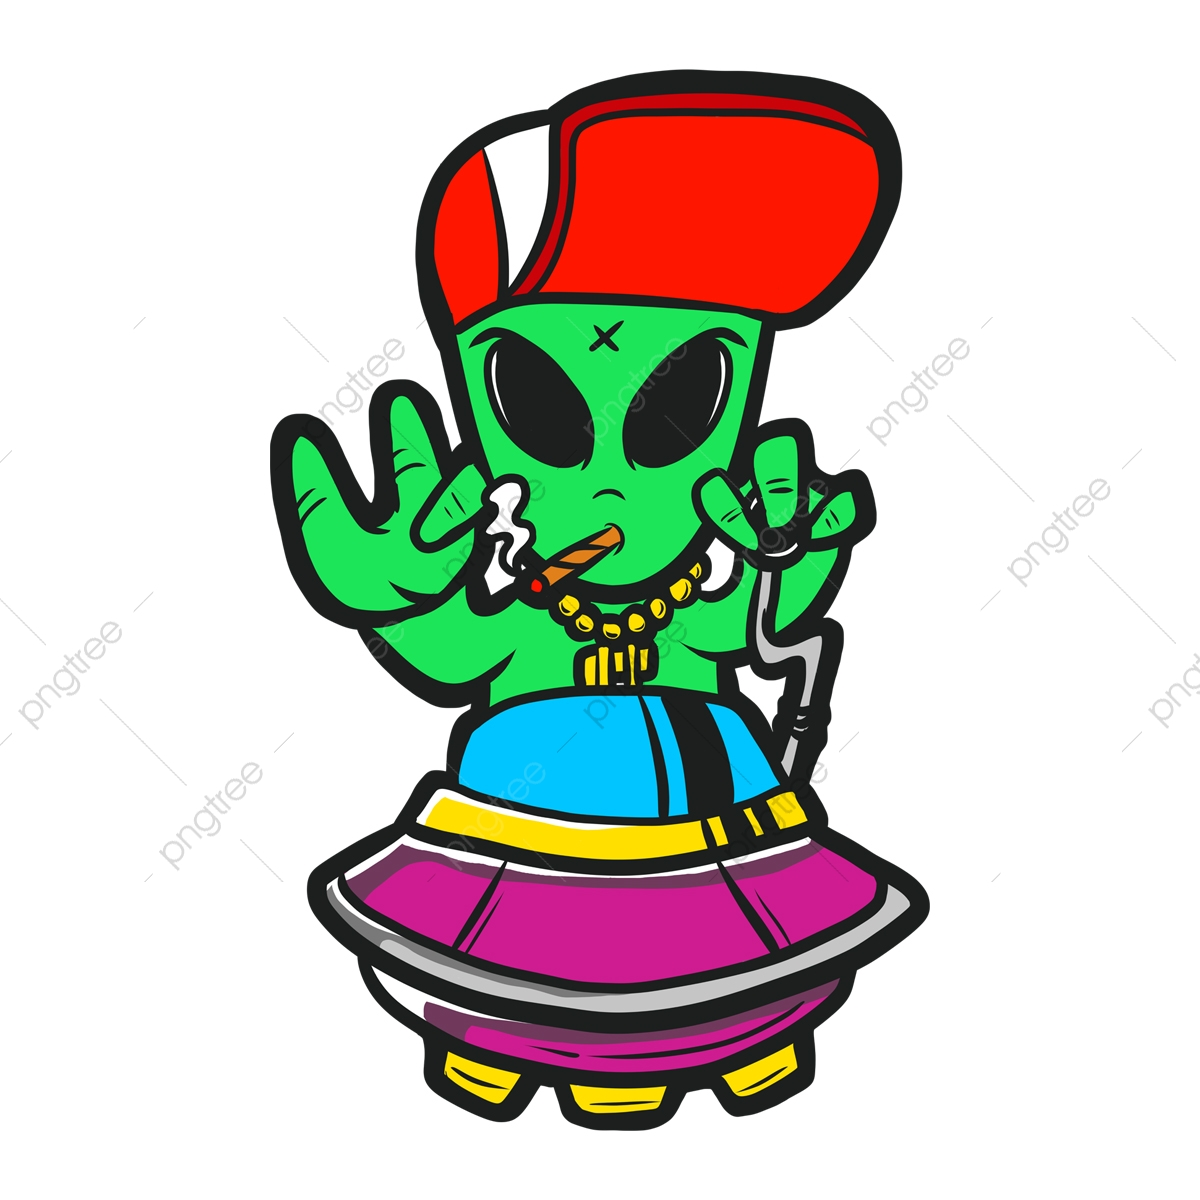 Cartoon Aliens, Cartoon Vector, Cartoon, Alien PNG Transparent Clipart  Image and PSD File for Free Download